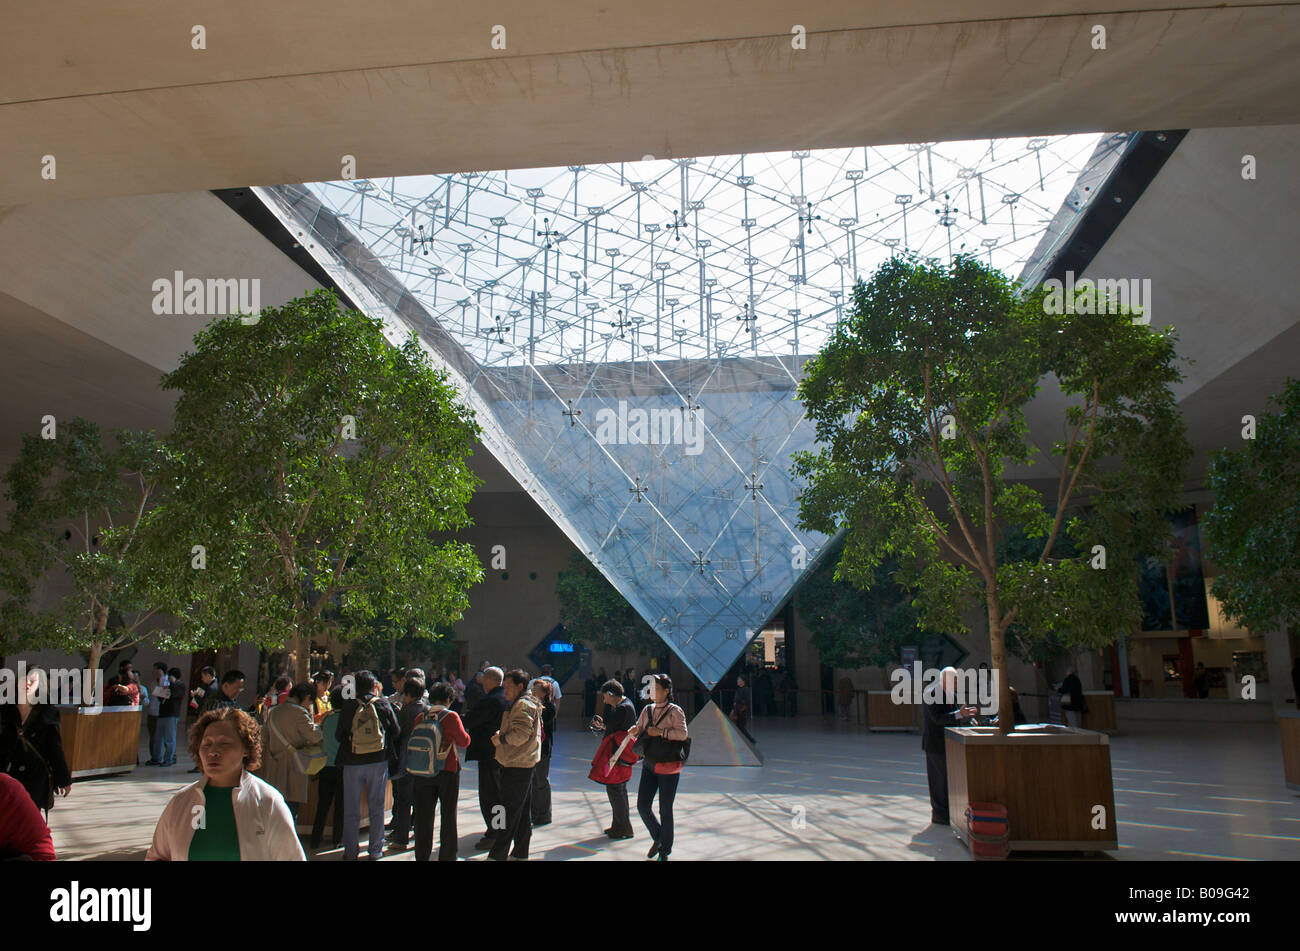 Inverted pyramid at the Carrousel du Louvre in Paris - Stock Image